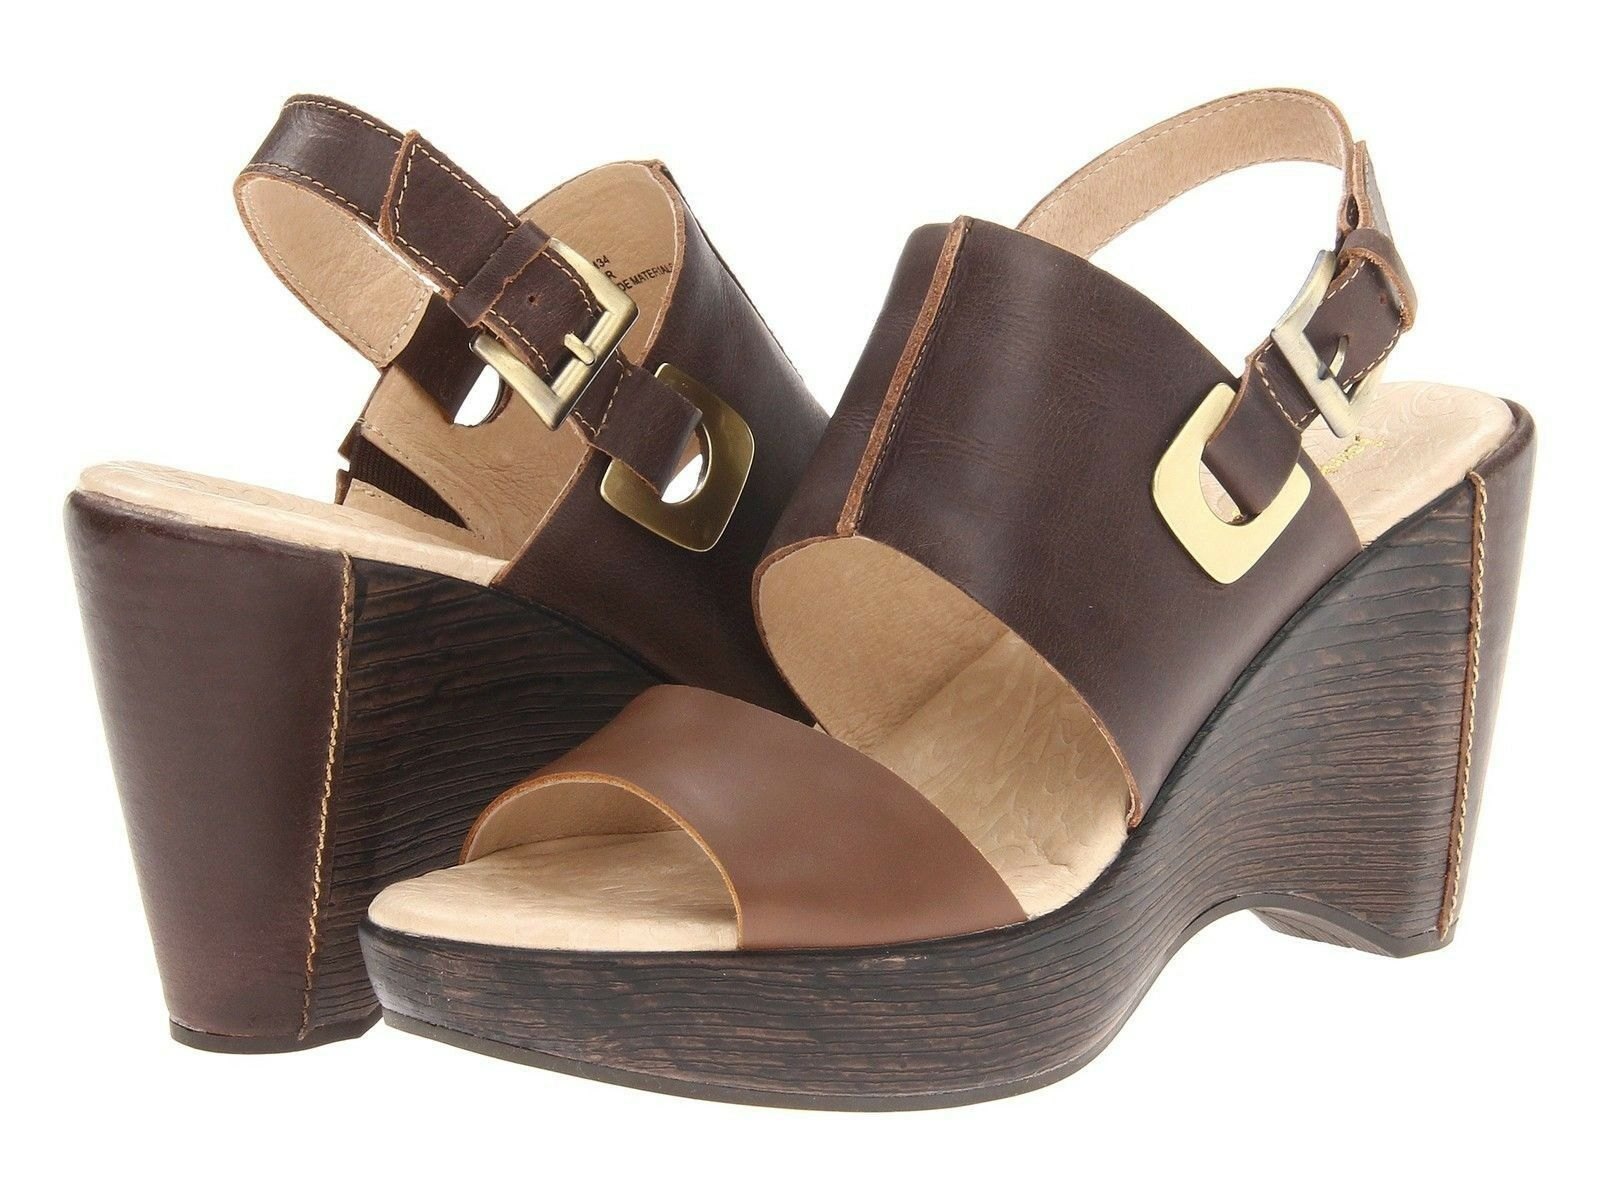 New femmes Jambu Gem  marron Leather Sling Back Sandal Heel chaussures 6 7 8 9.5 10 11